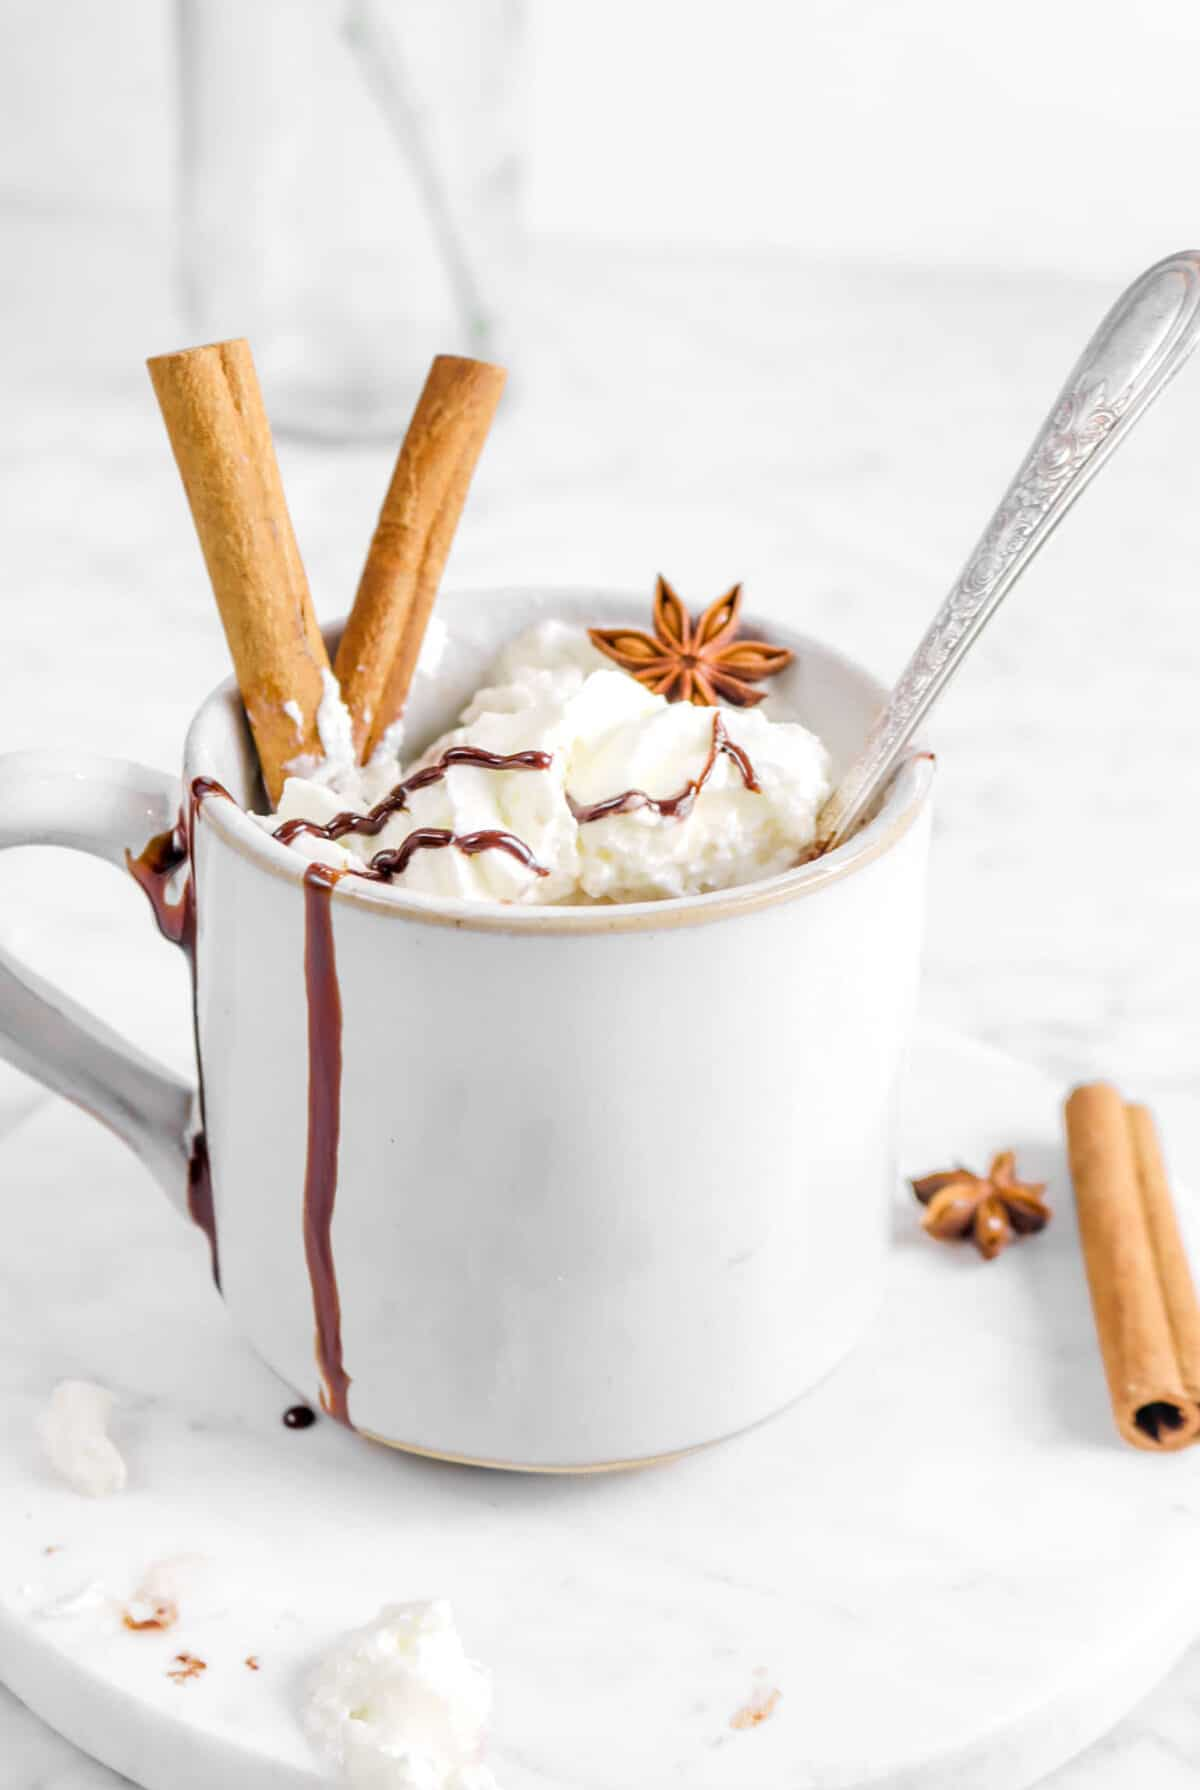 mug with spoon inside, whipped cream , chocolate sauce, and whole spices